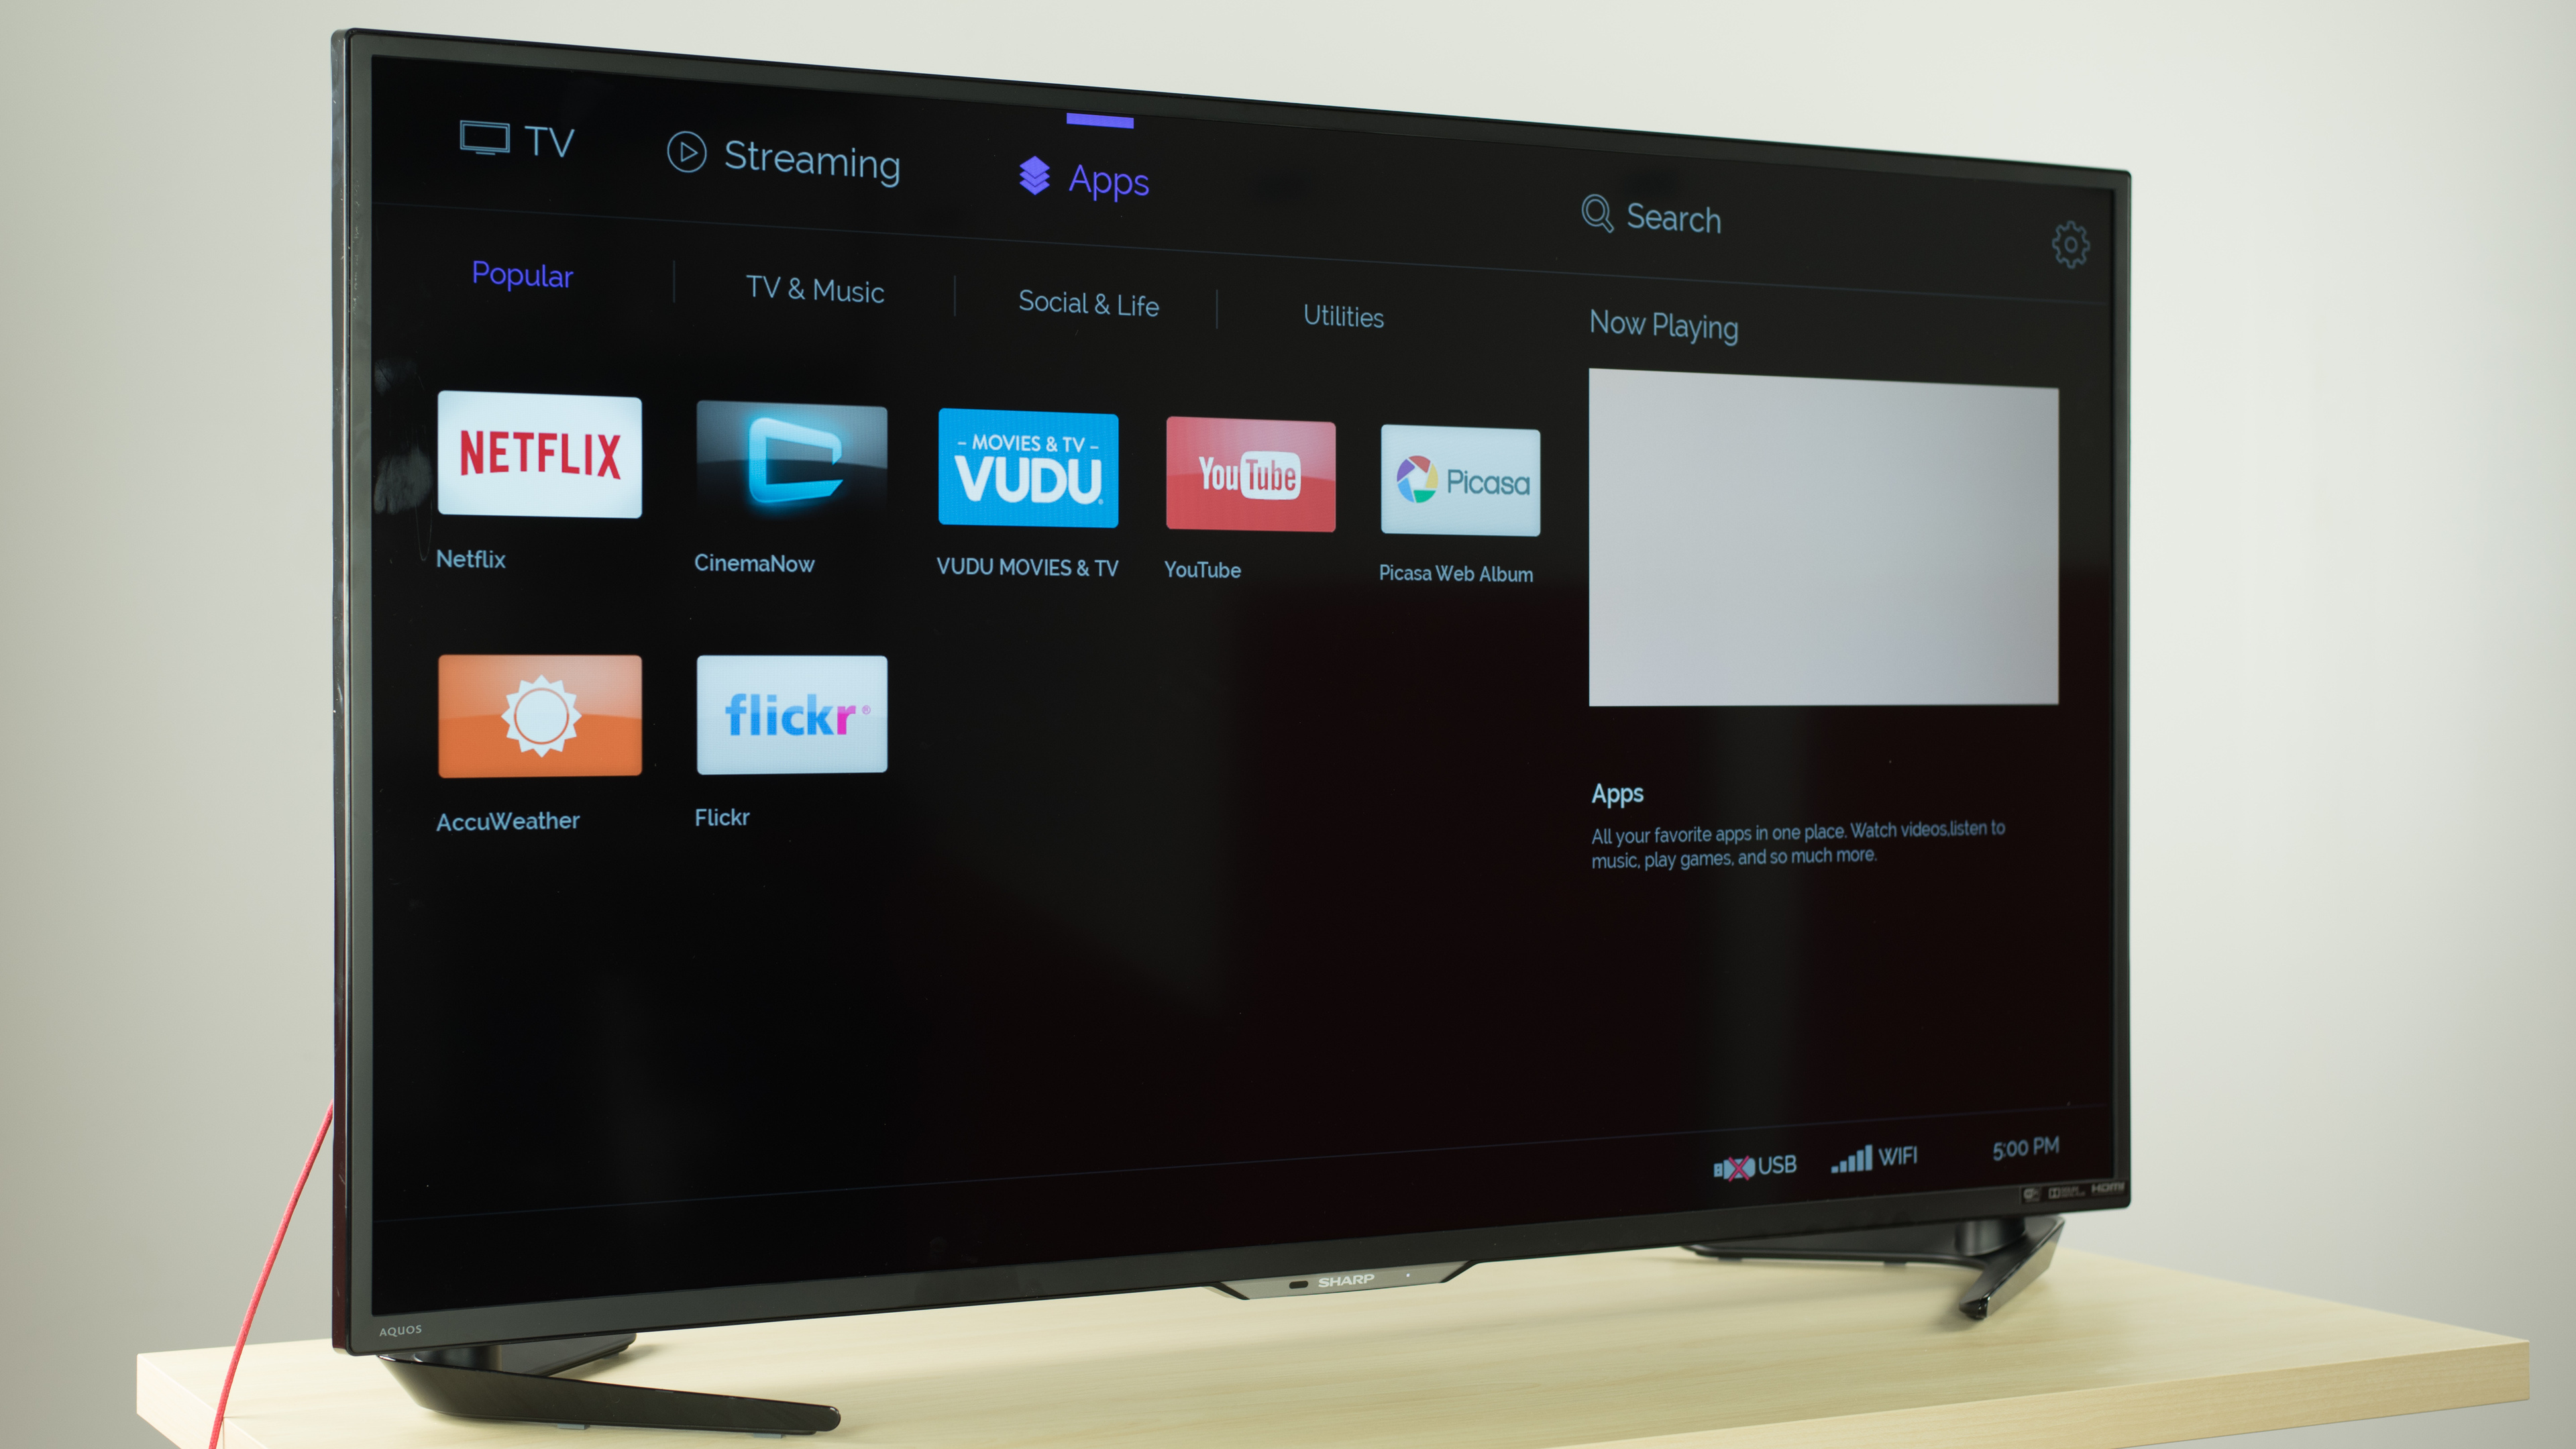 Can i download apps on my sharp smart tv